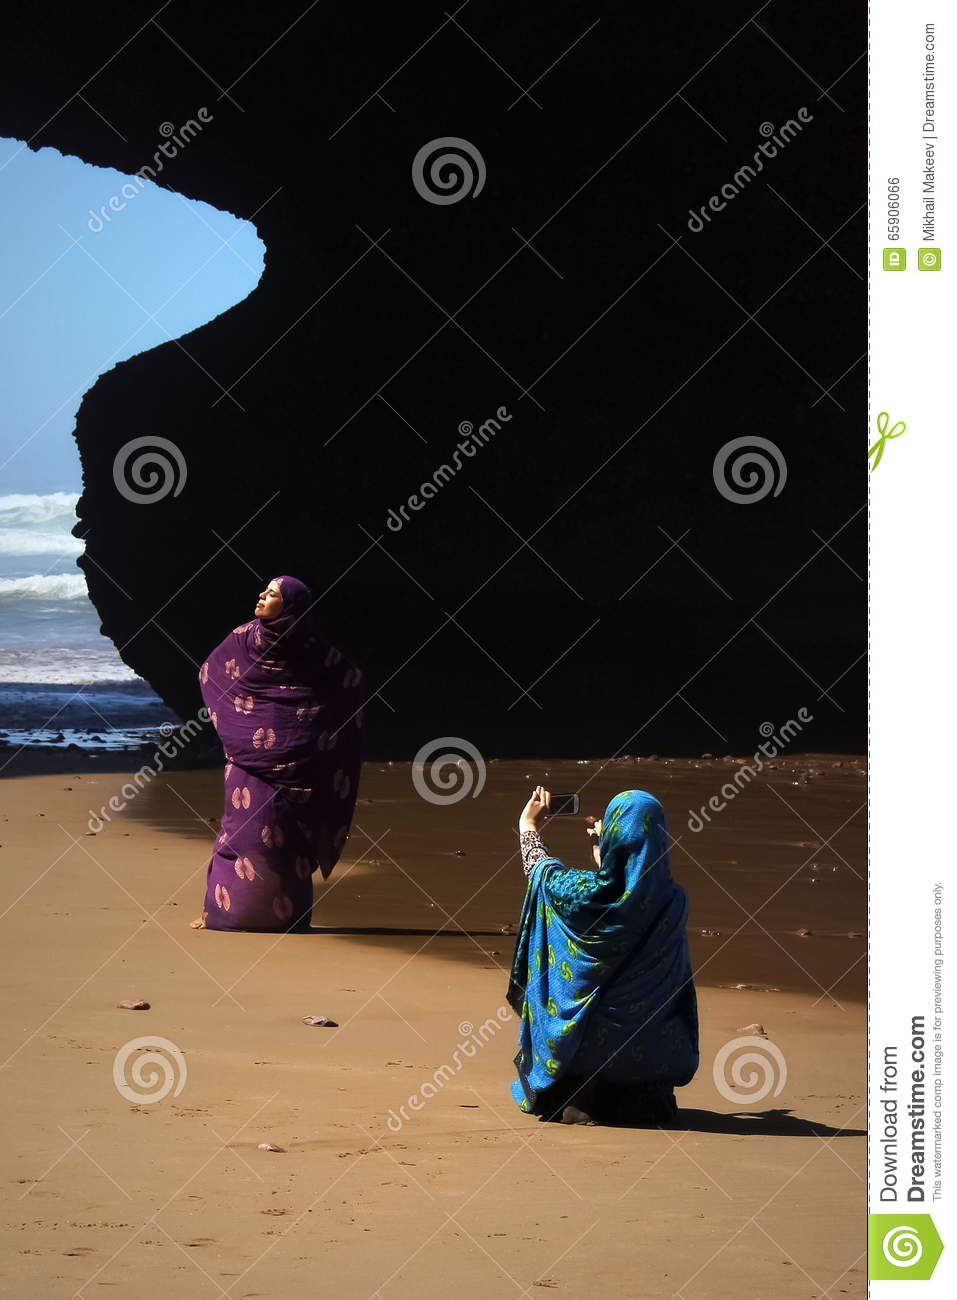 muslim single women in atlantic Muslim women and dating muslim women dating is not allowed by islam as pertains to the western idea of dating in islam, the only interaction allowed between men and women who are not related is through marriage.